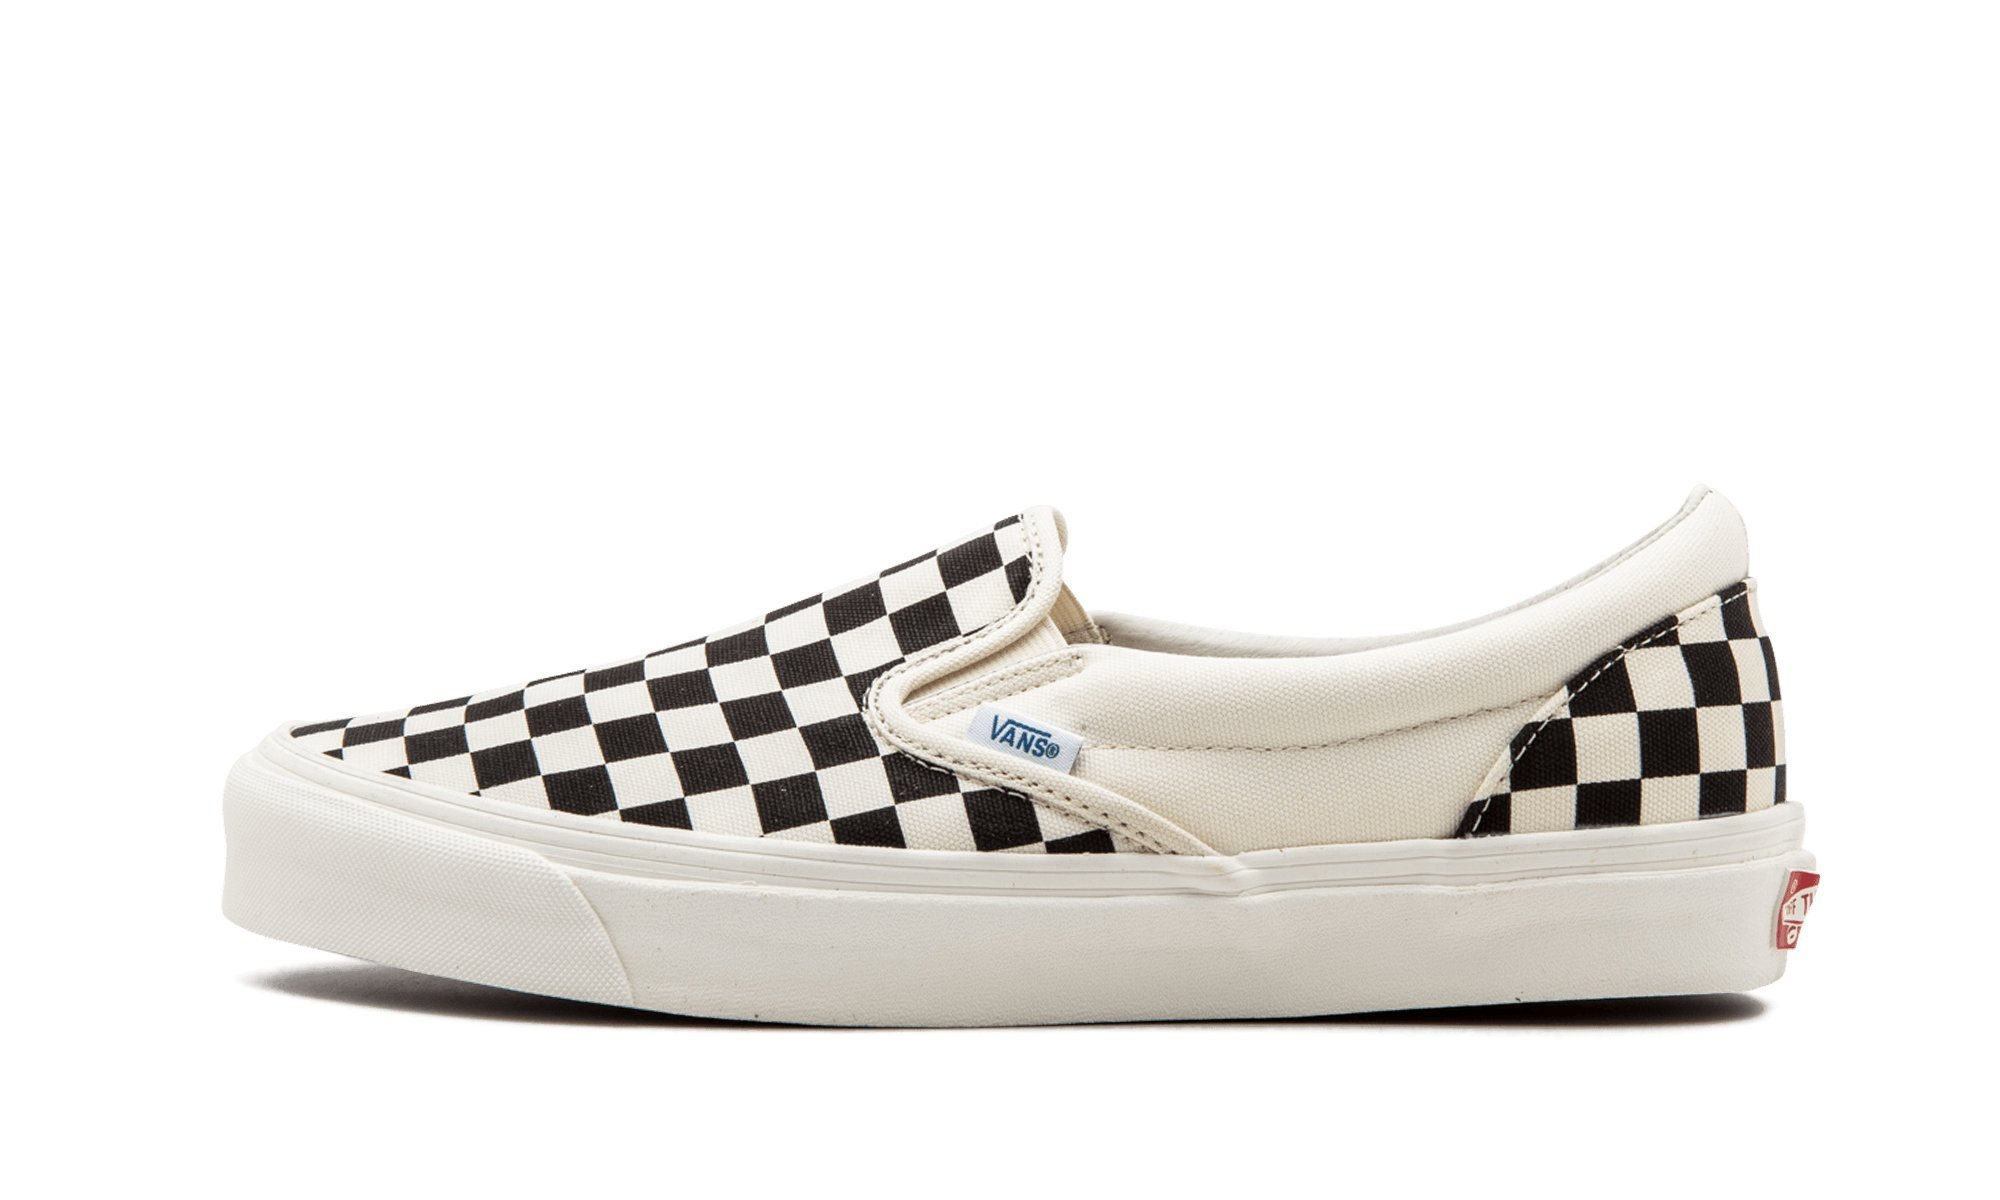 Vans Classic OG Classic Slip-On LX Sneakers VN000UDFF8L Black/White Checkerboard, 9.5 Mens / 11 Womens US